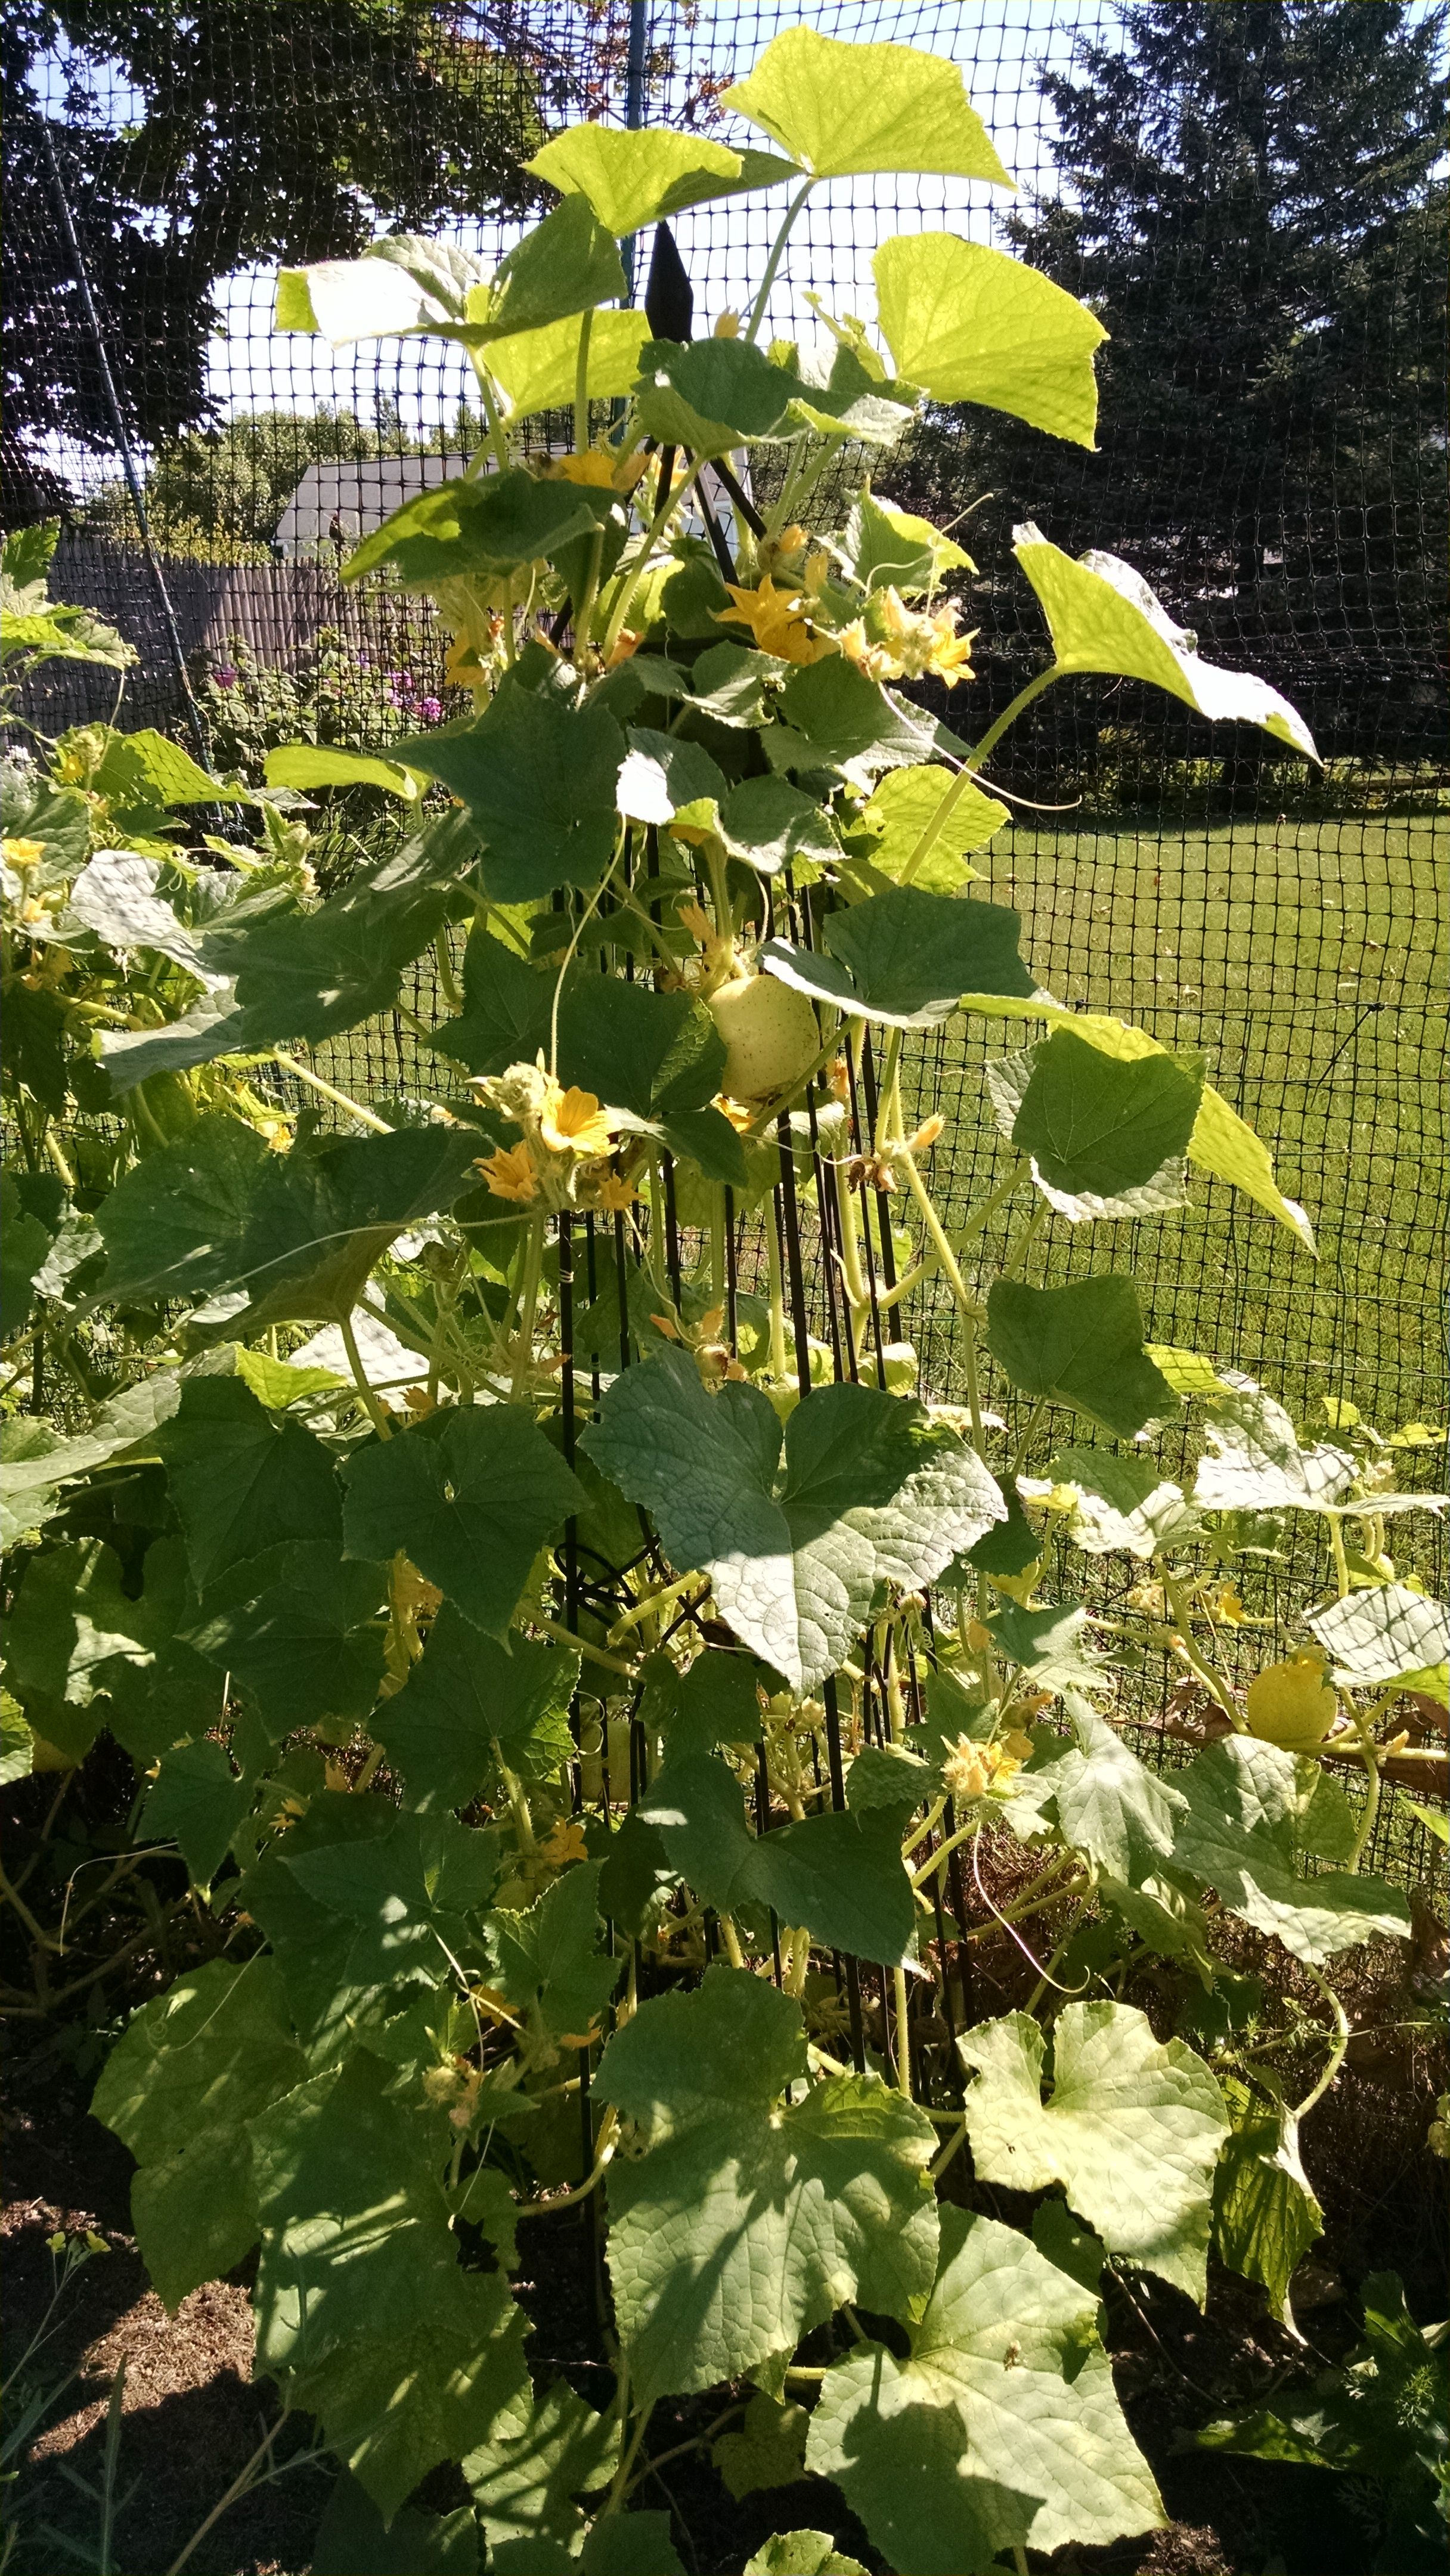 The Cucumbers That I've Grown to Love | Uconnladybug's Blog